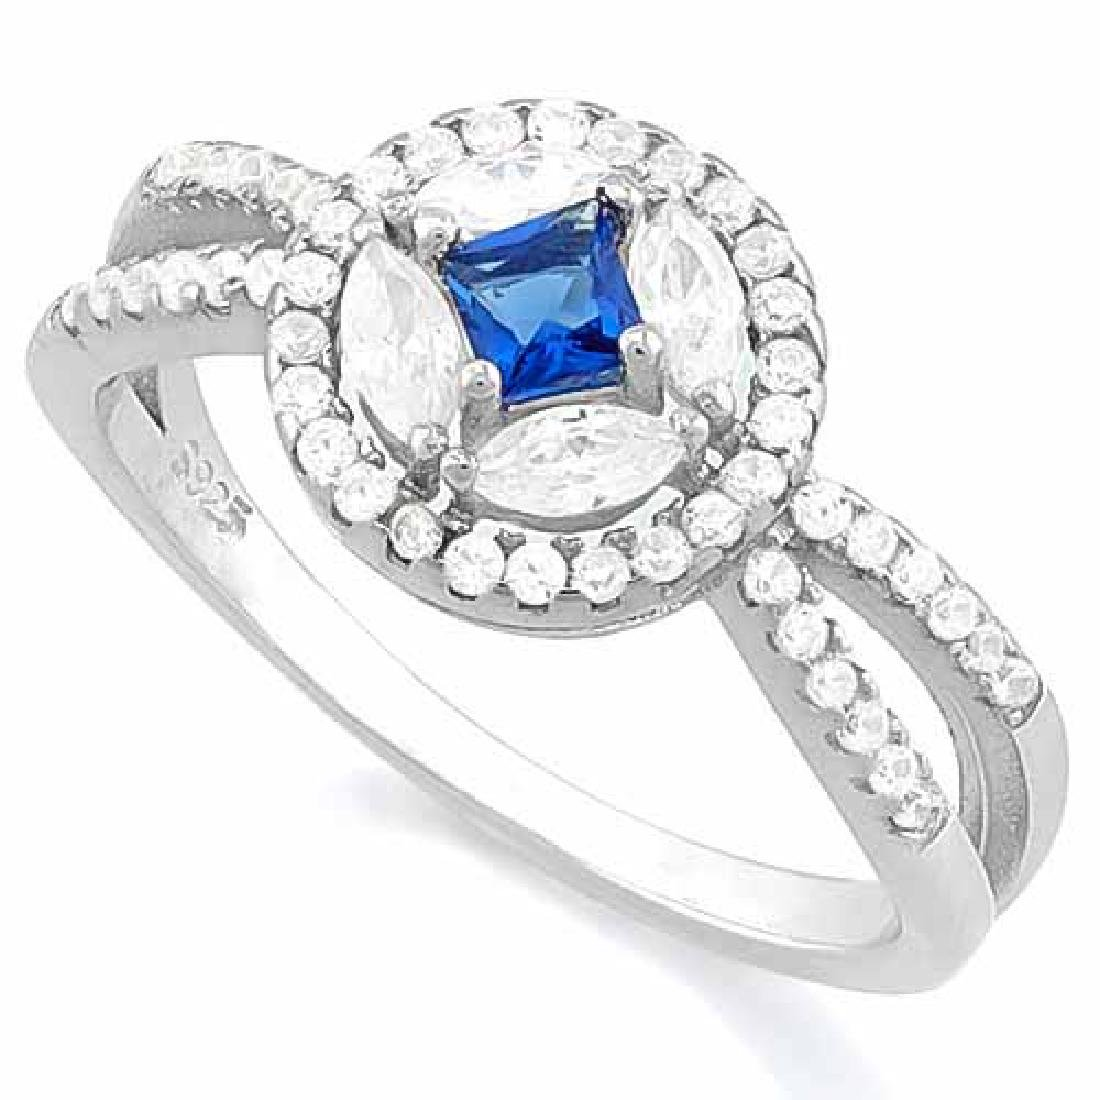 CREATED BLUE SAPPHIRE 925 STERLING SILVER HALO RING